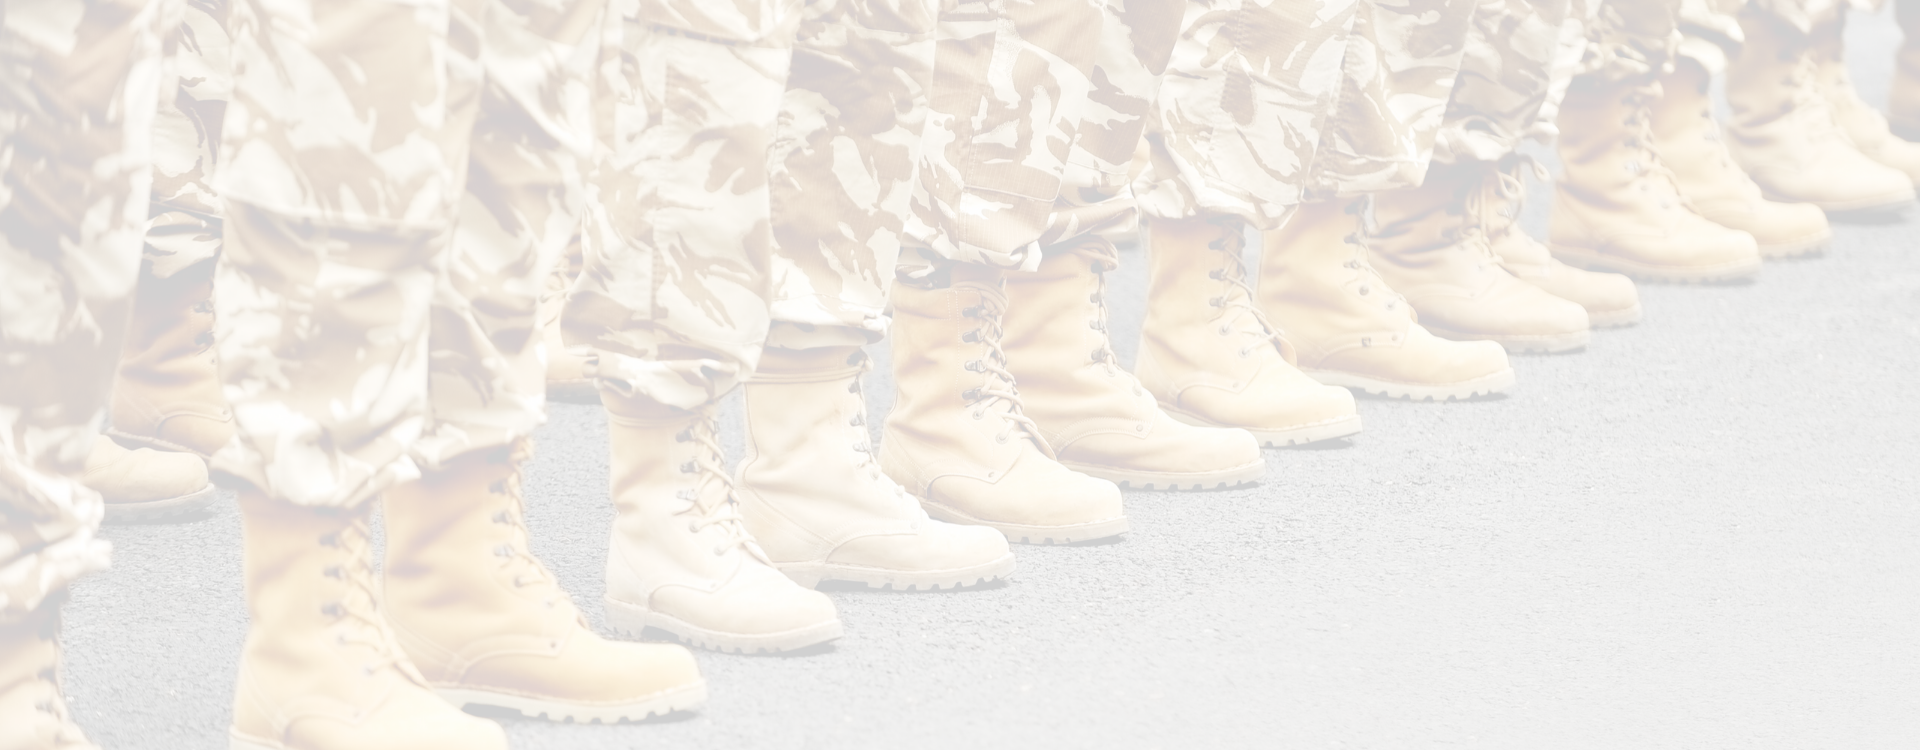 Move It Squad Top Slider BG_1920 x 750_military boots_white overlay